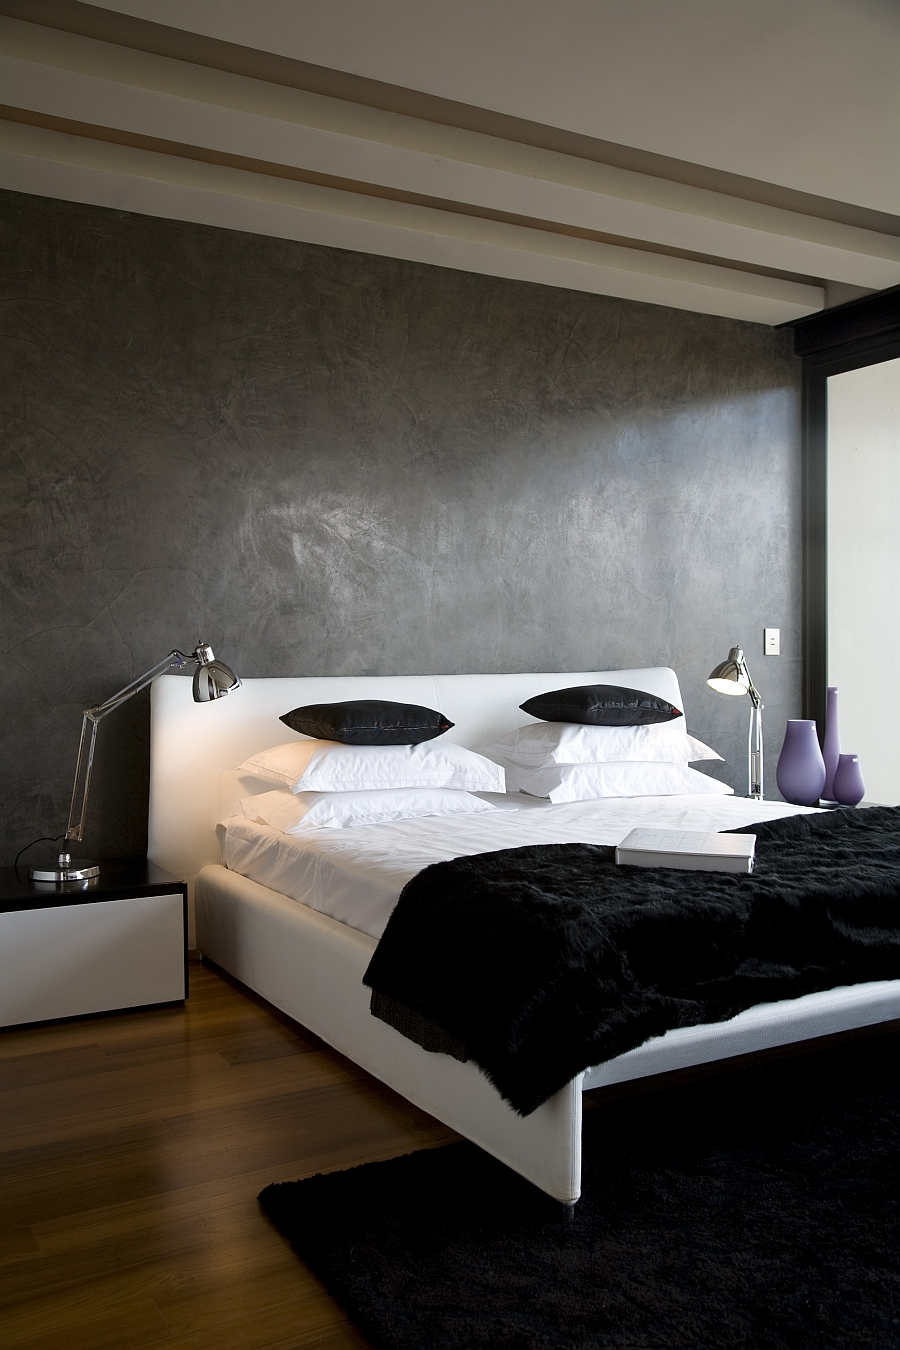 Minimalist bedroom in black, white and grey